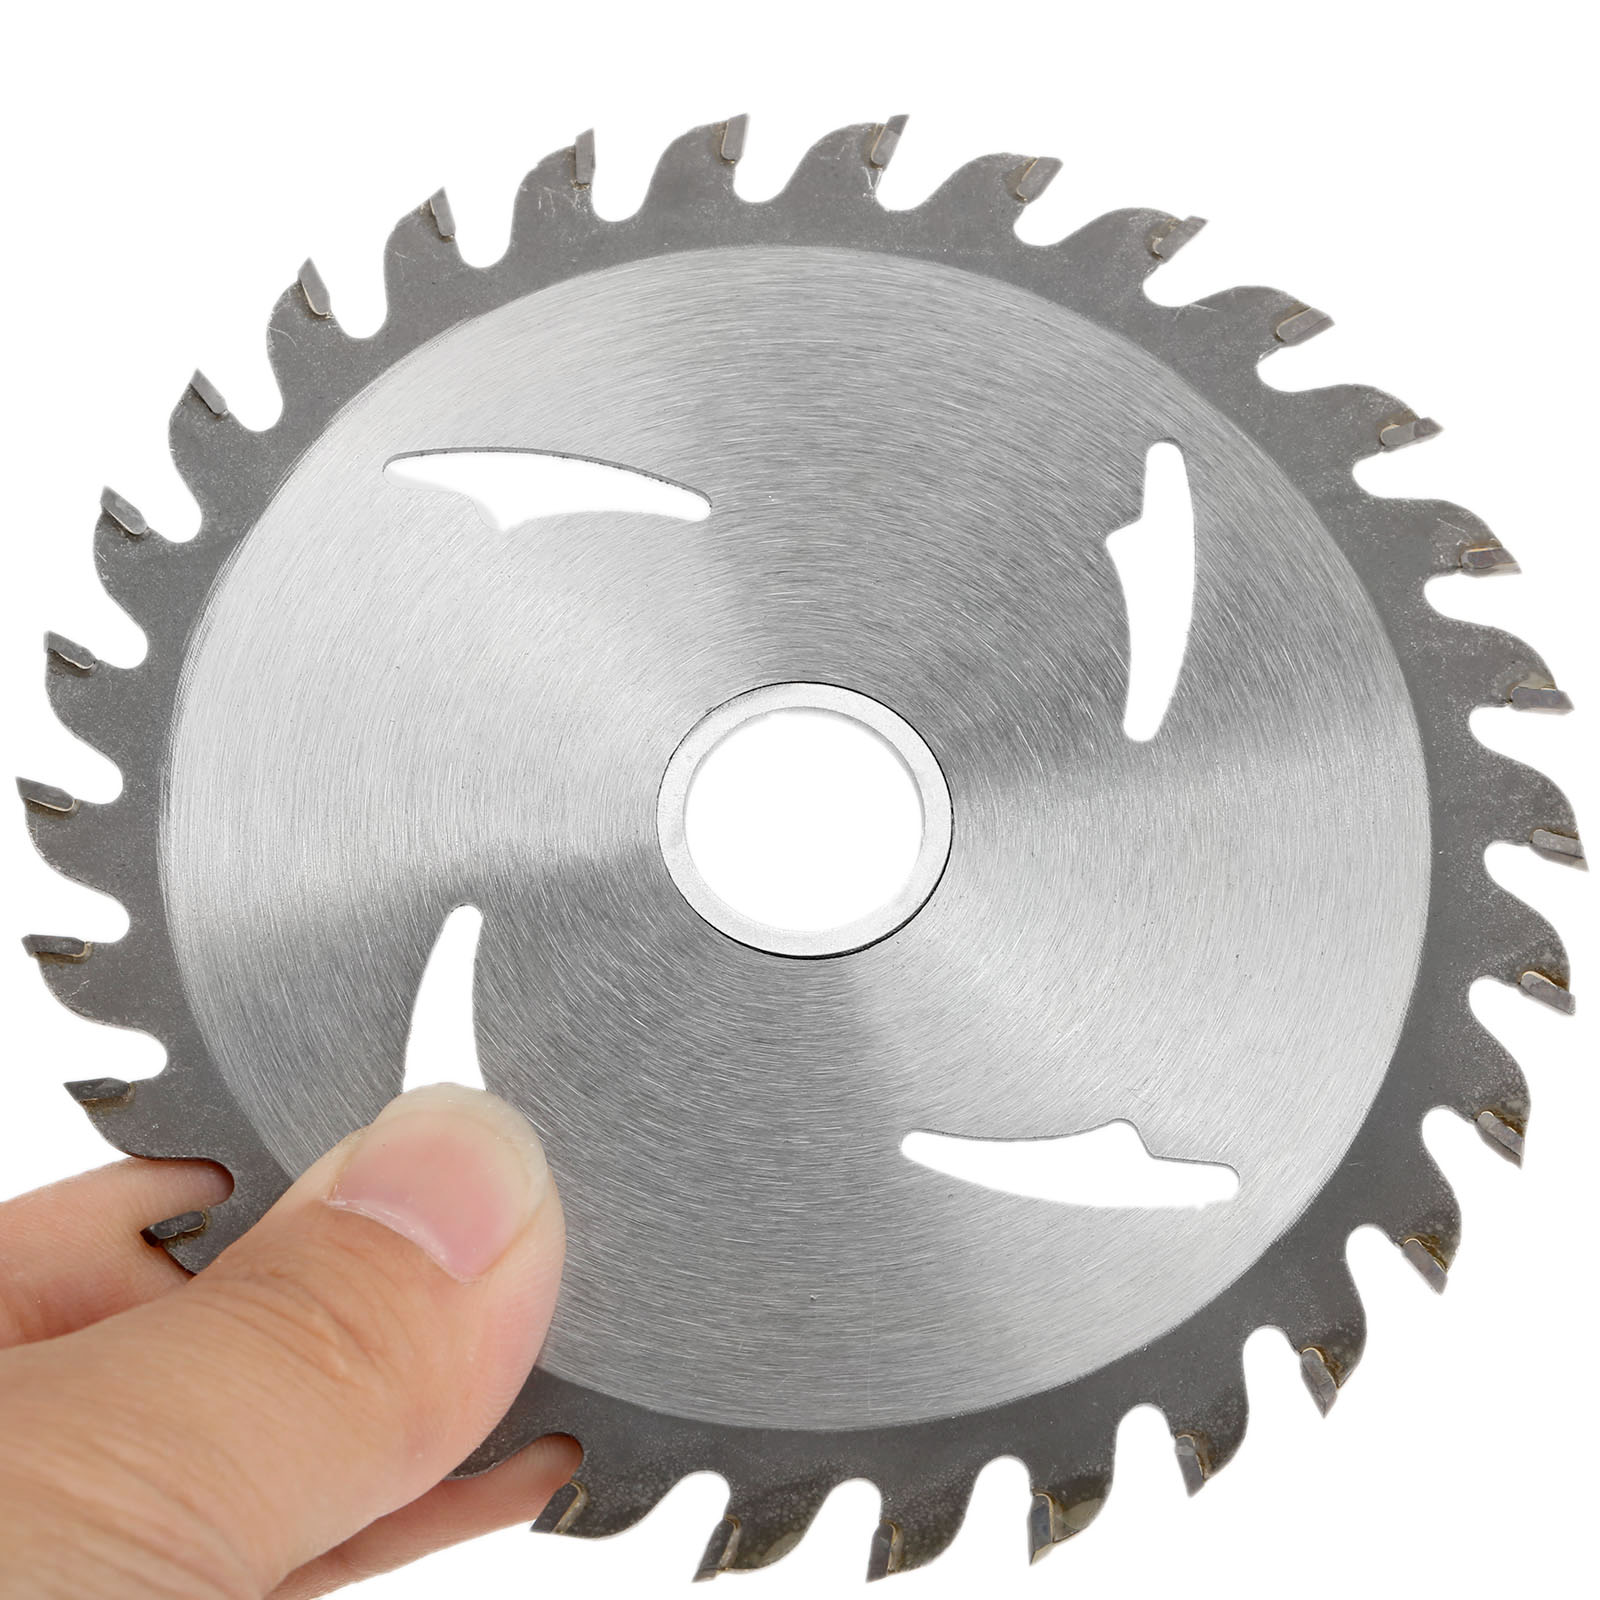 circular saw blades for wood. 1pc 30 teeth circular saw blade wheel cutting discs tungsten steel wood for granite power tool dremel accesories-in from home blades